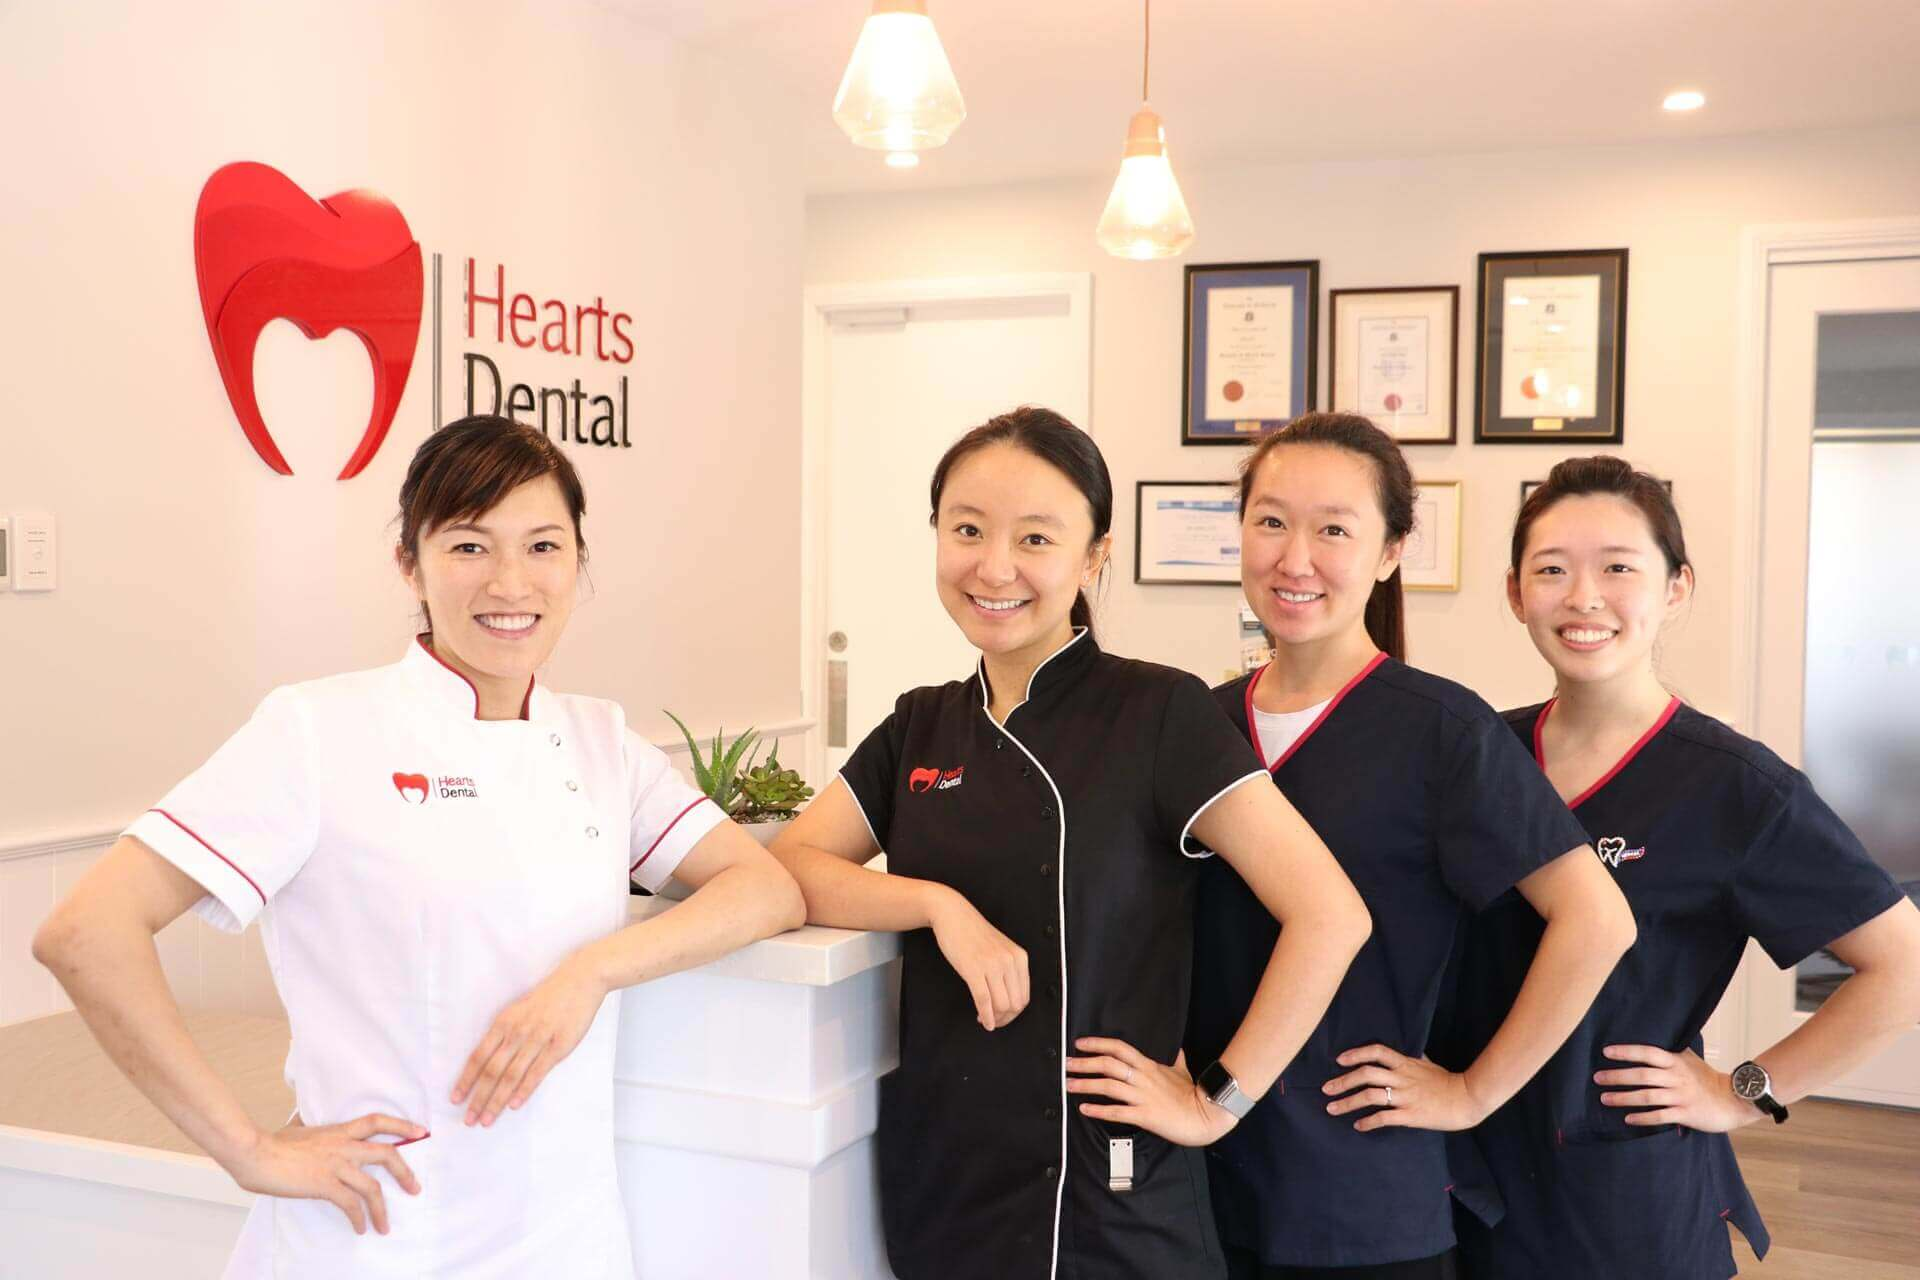 team-photo-about-hearts-dental-banner